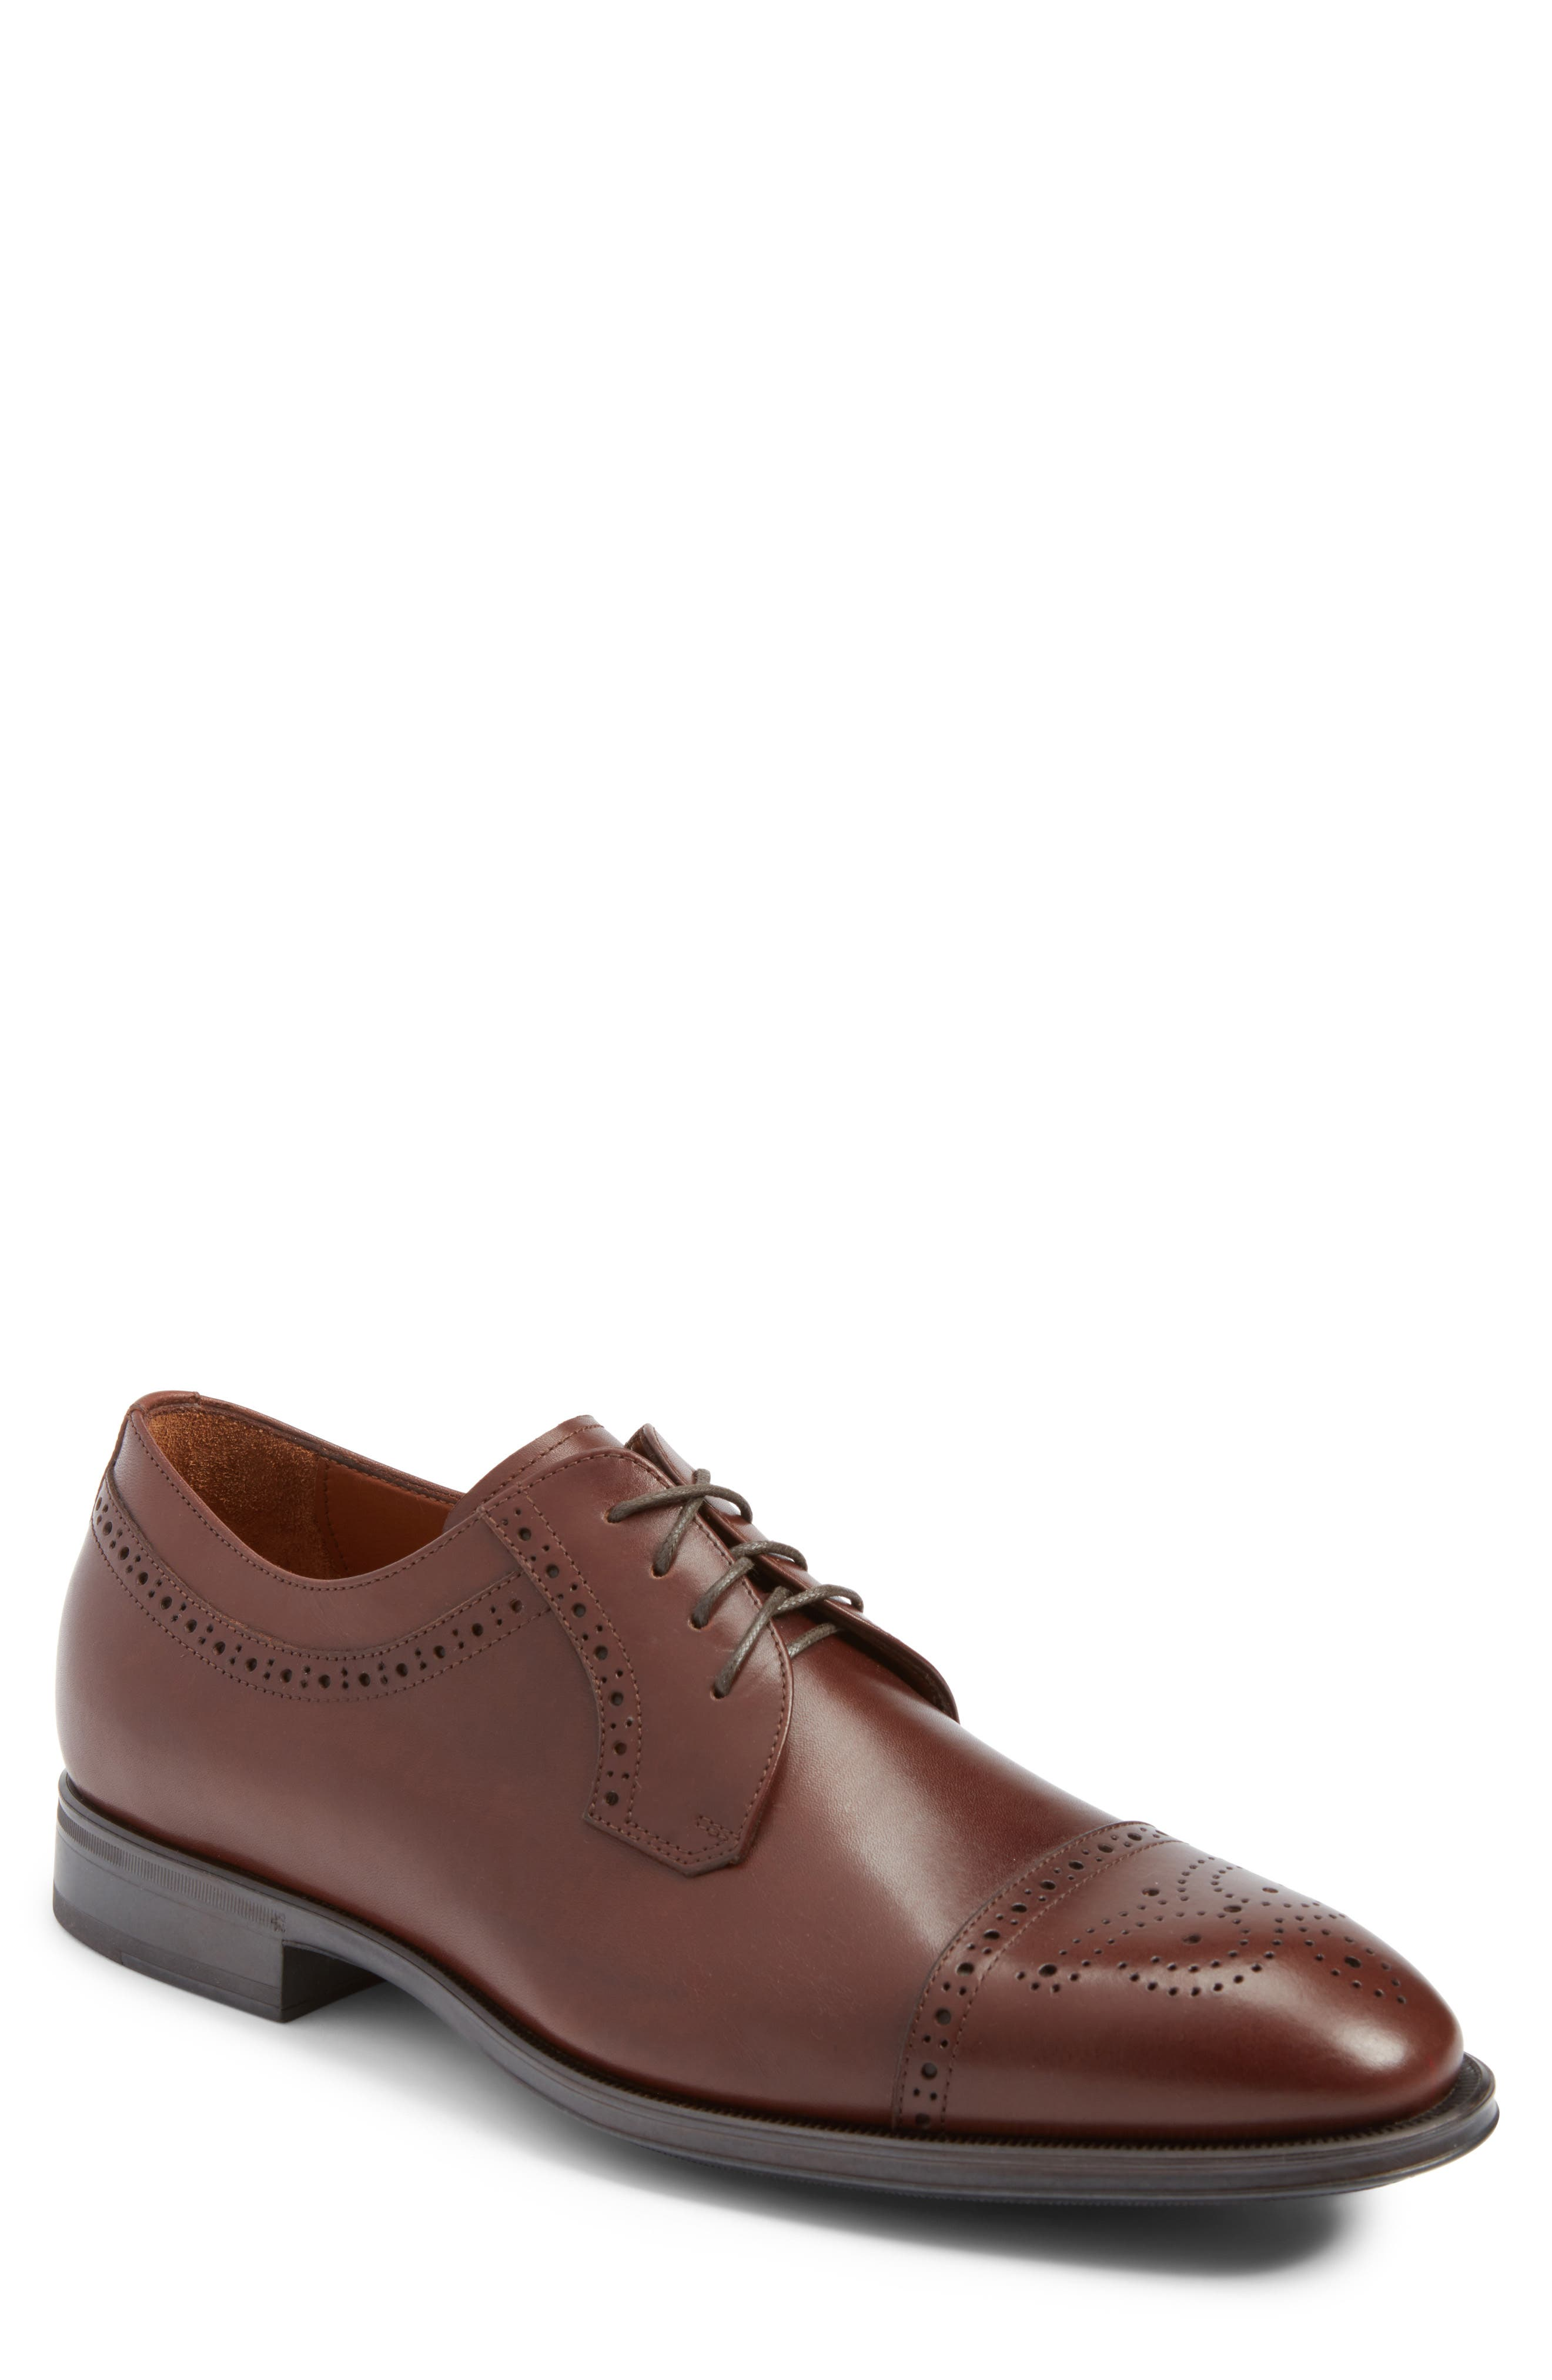 Duke Medallion Toe Derby,                         Main,                         color, Burnished Cognac Leather